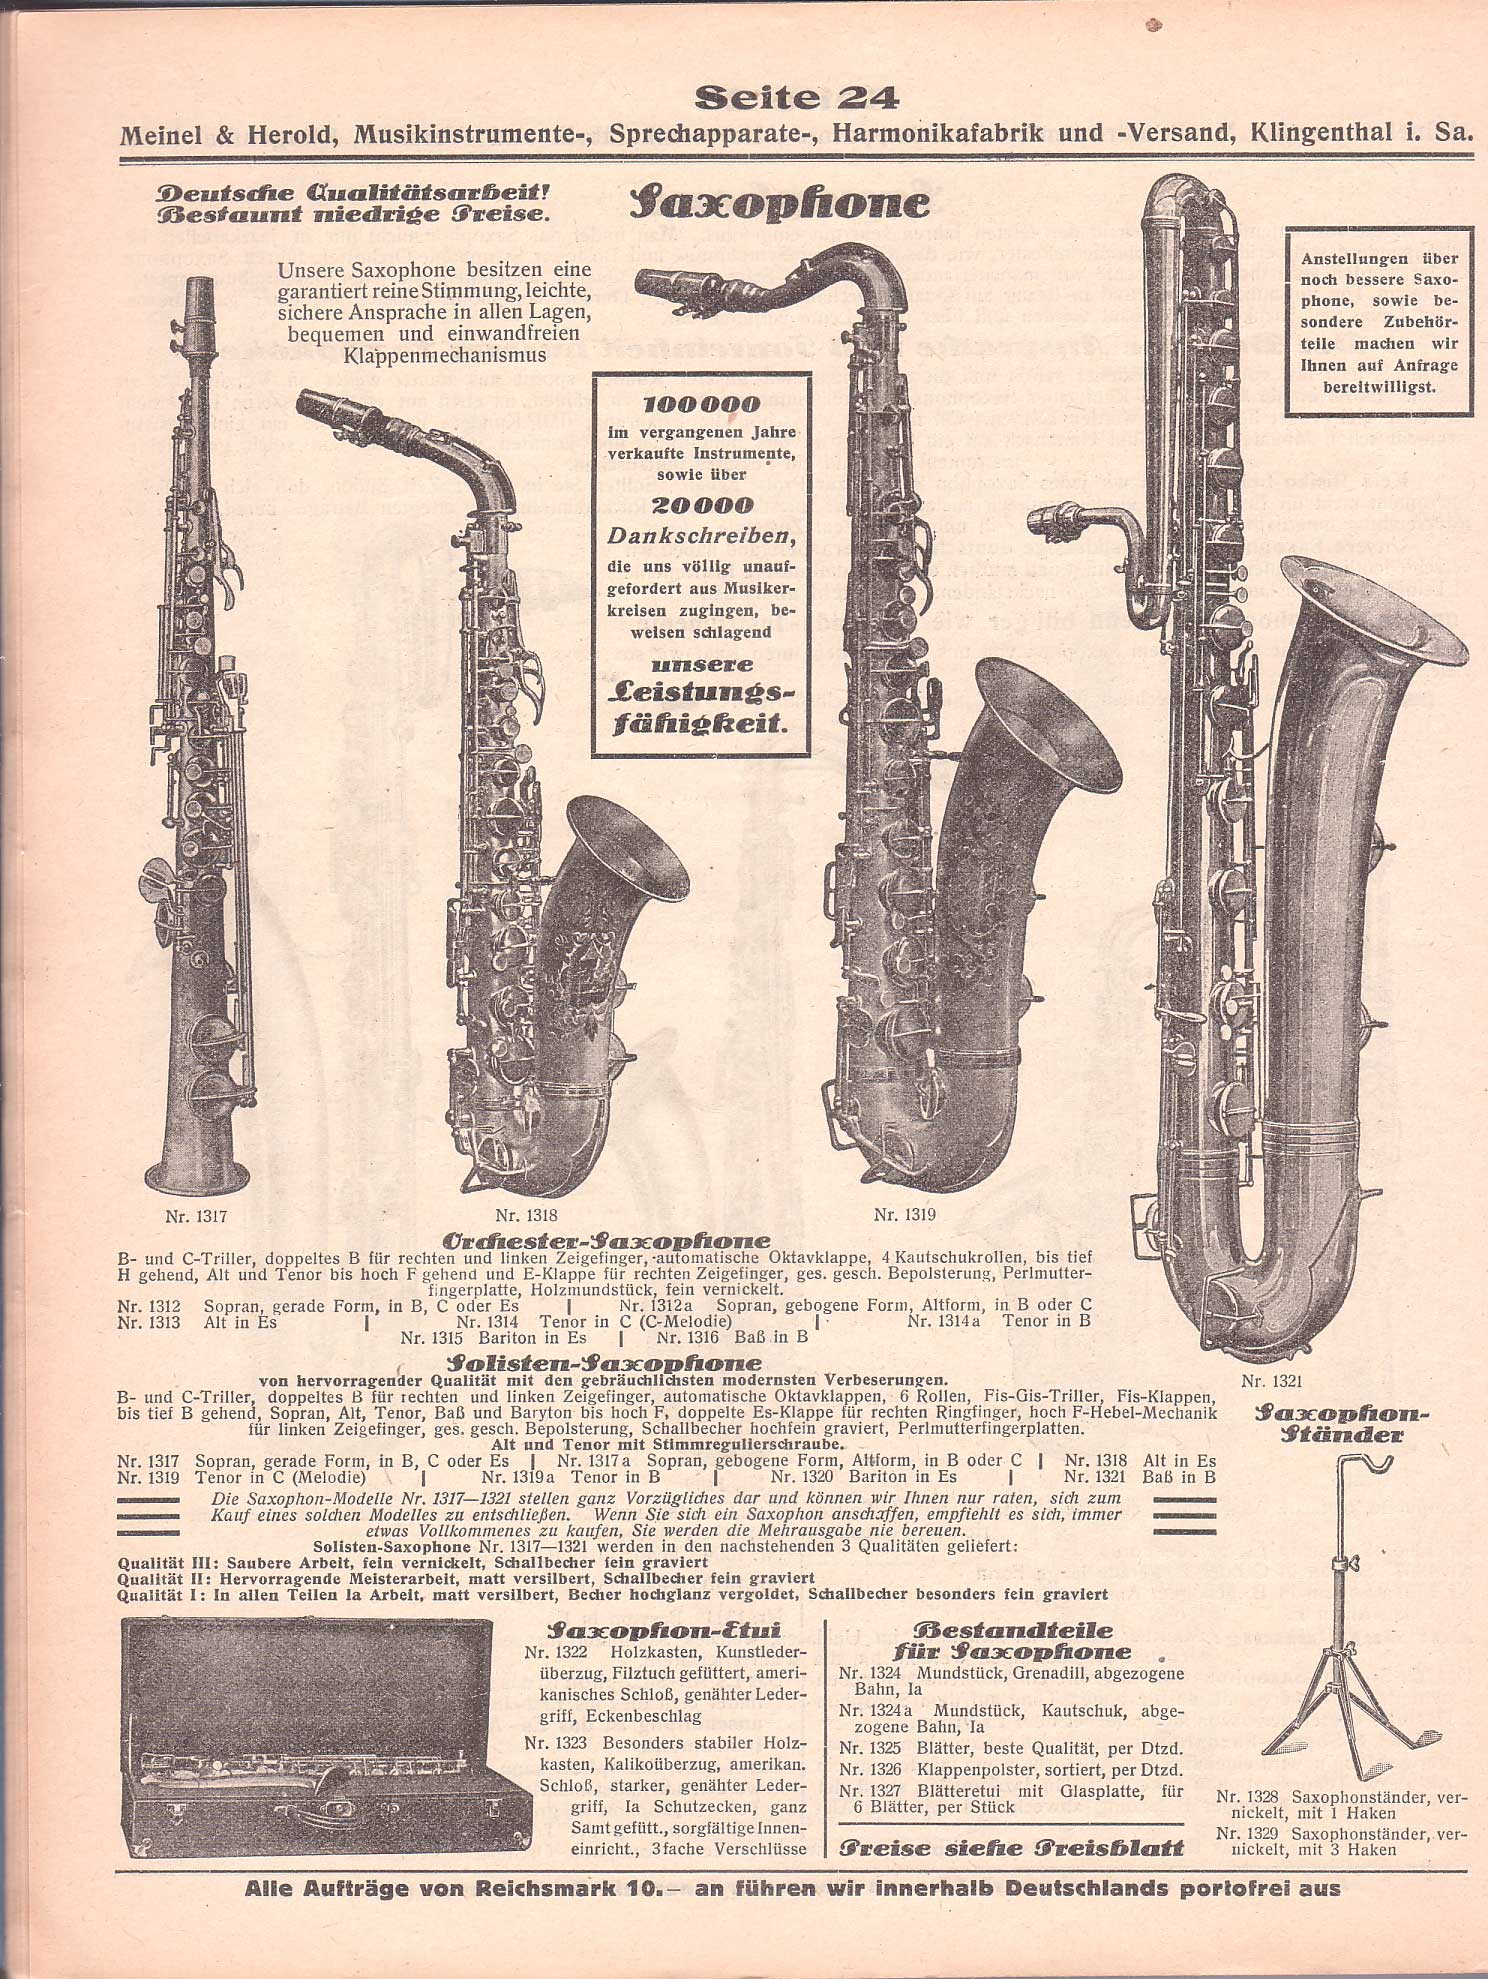 Meinel & Herold vintage catalogue, vintage musical instrument catalogue, German catalogue, saxophone descriptions in German,